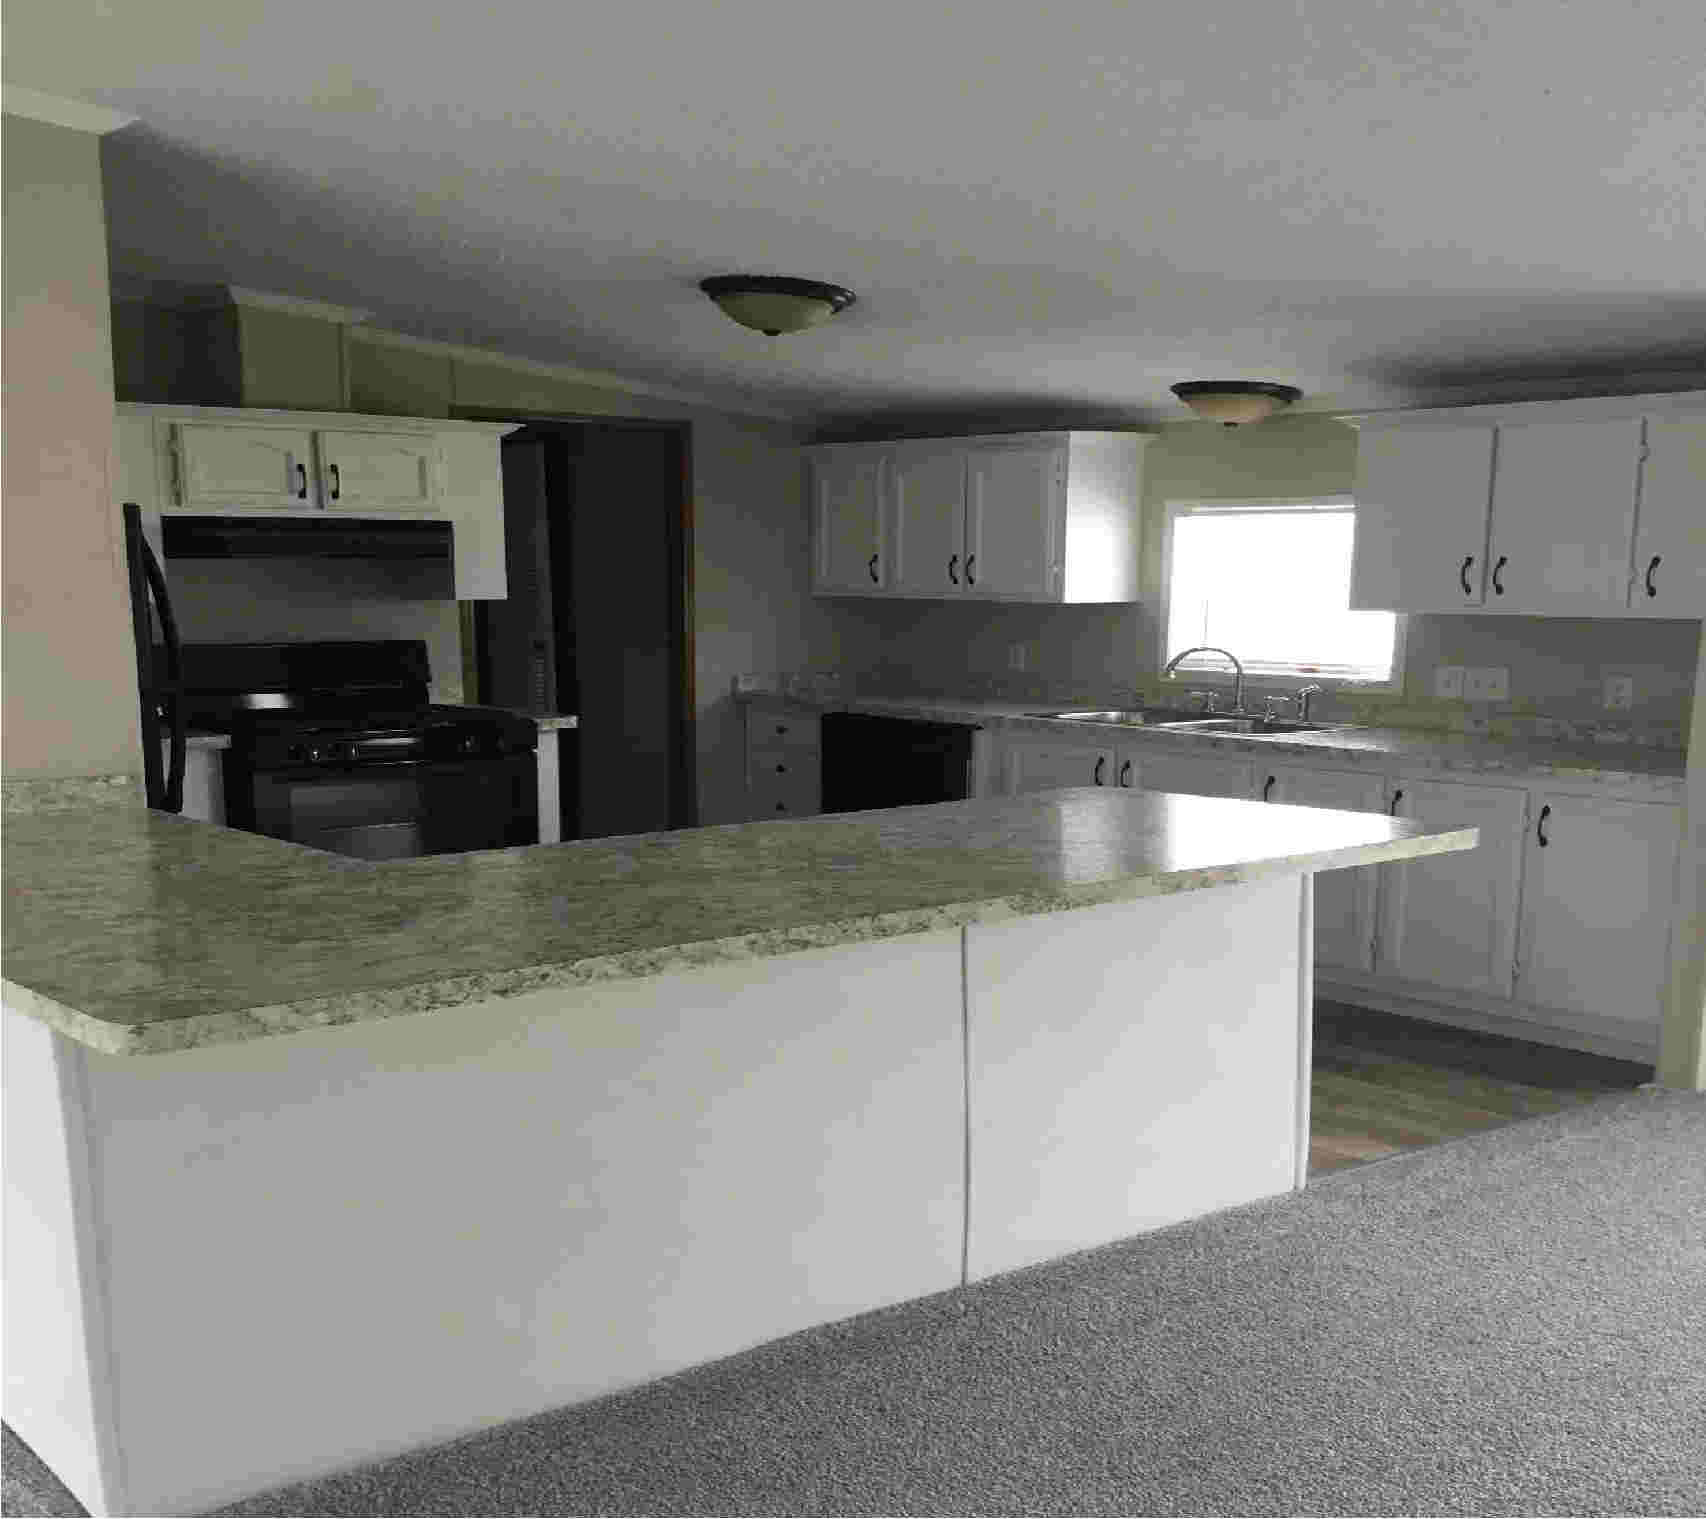 mobile home kitchen after refurbishment and repair